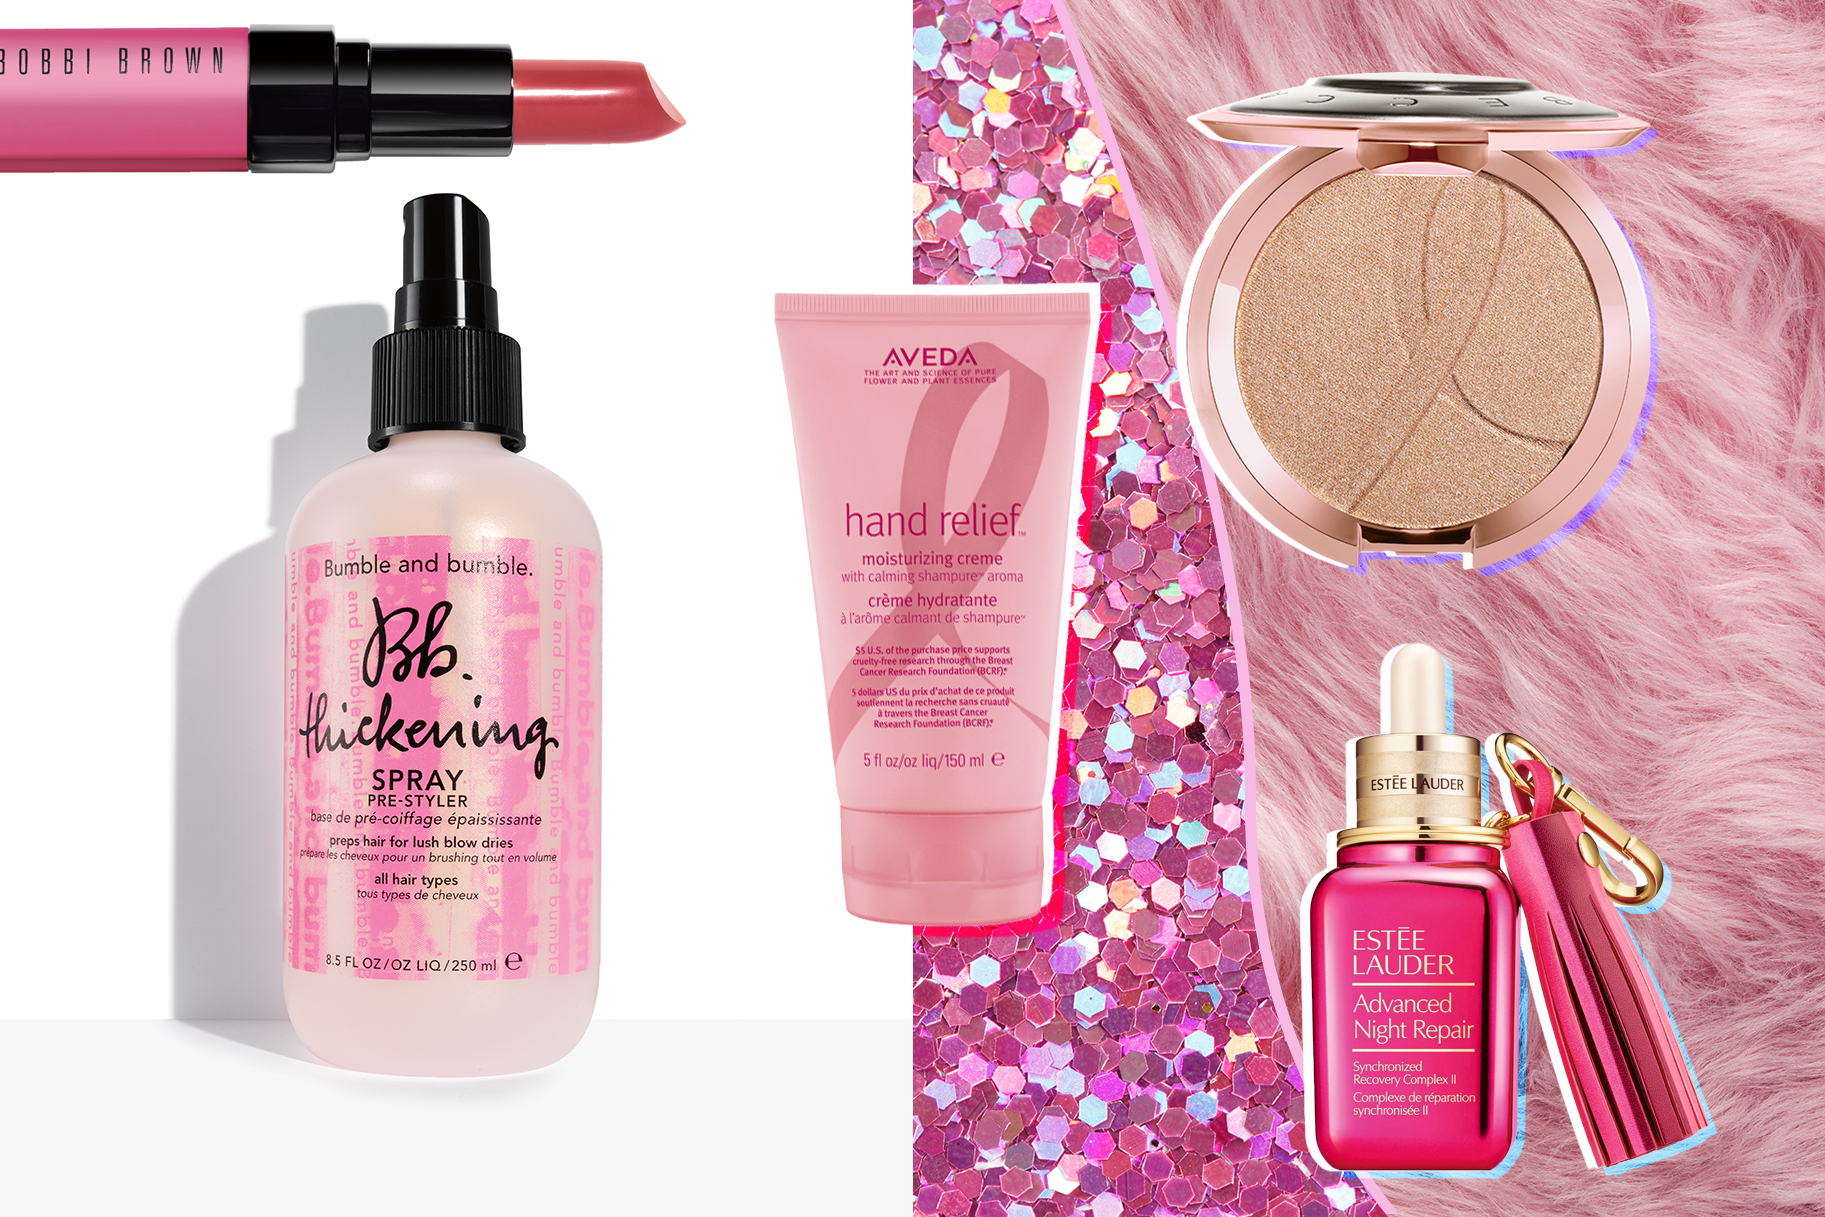 c05698c6034e1 Beauty Products to Support Breast Cancer Awareness Month | Lookbook